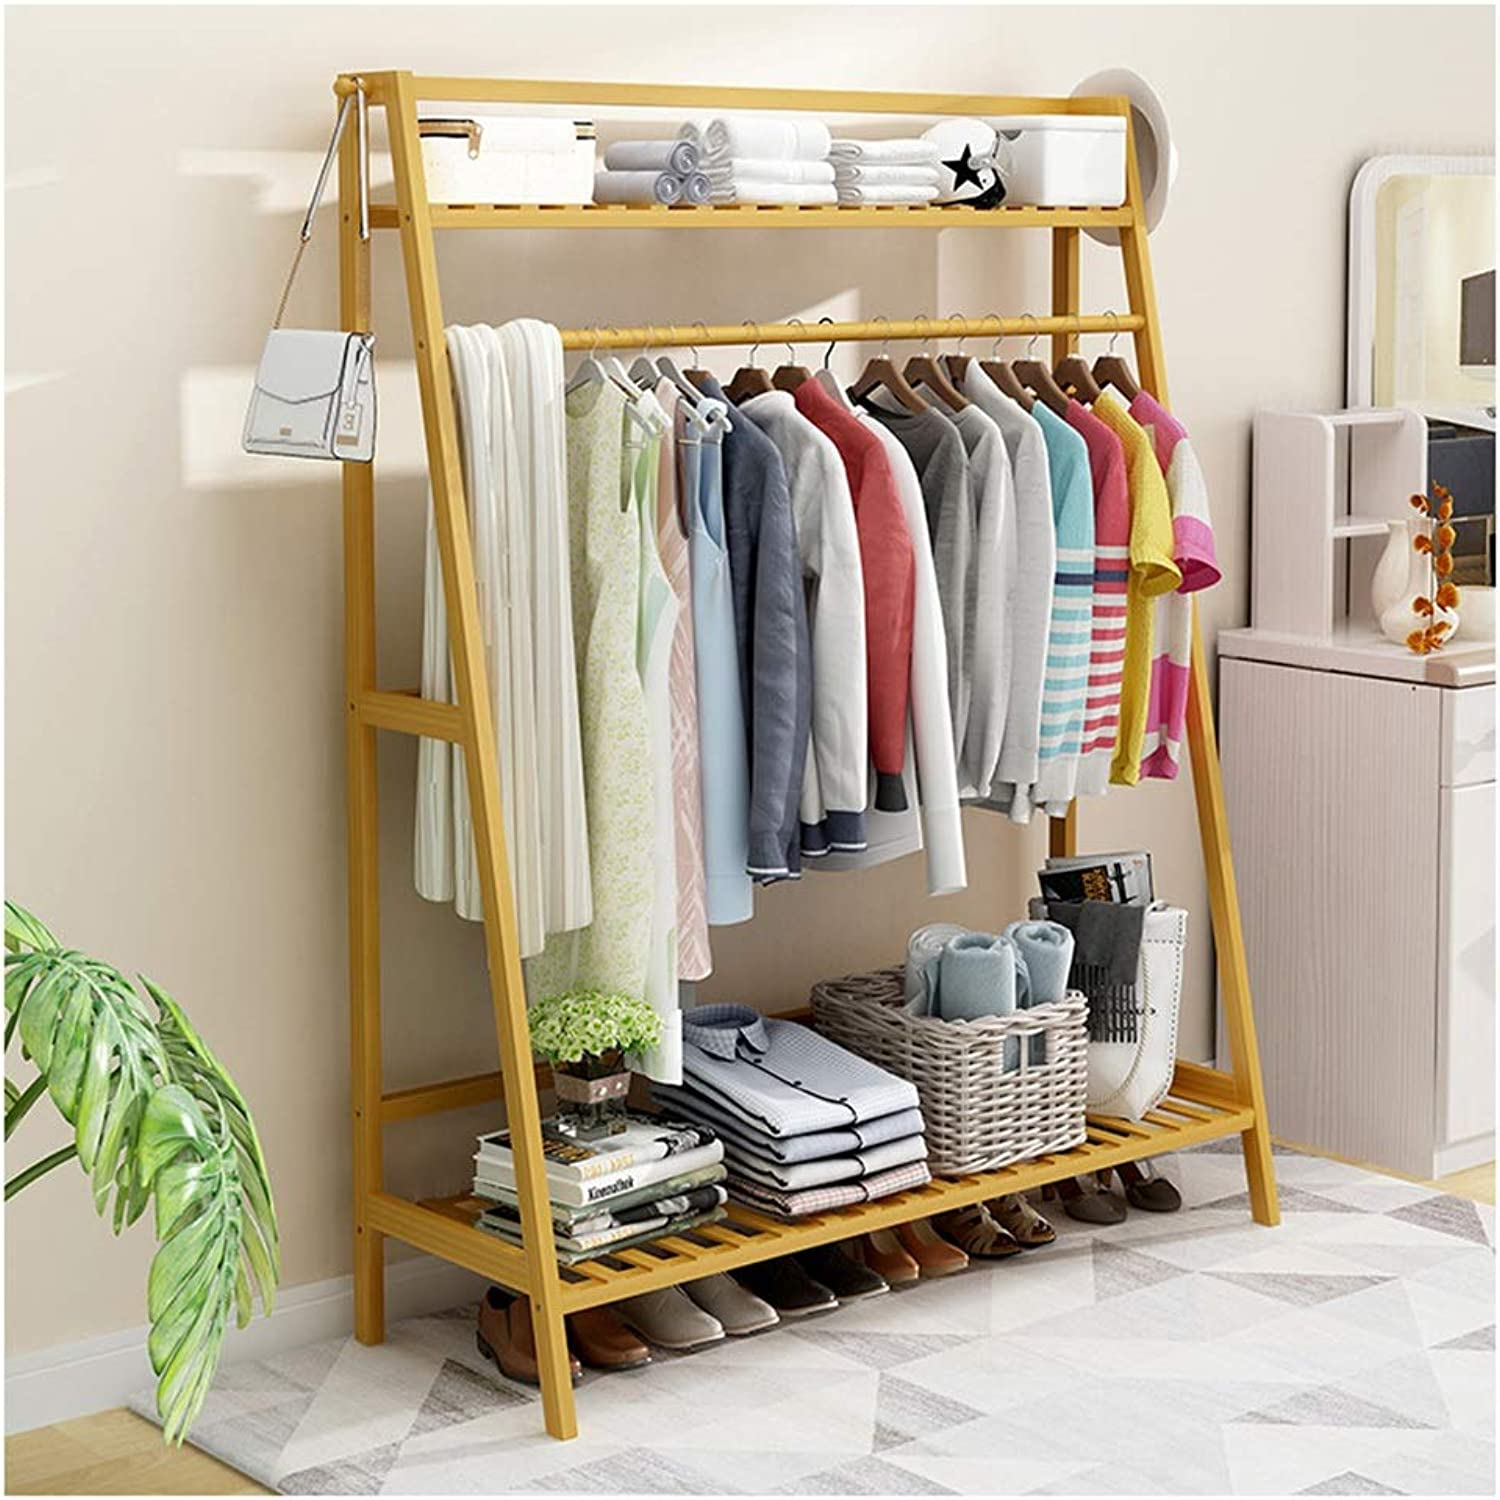 WEIBING-4 Standing Coat Rack High 140CM Bamboo color Shelf Hall Trees Entryway Coat Stand Clothes Rack Bedroom Living Room Clothes Hat Scarf Umbrella Stand Coat Racks (Size   100CM)